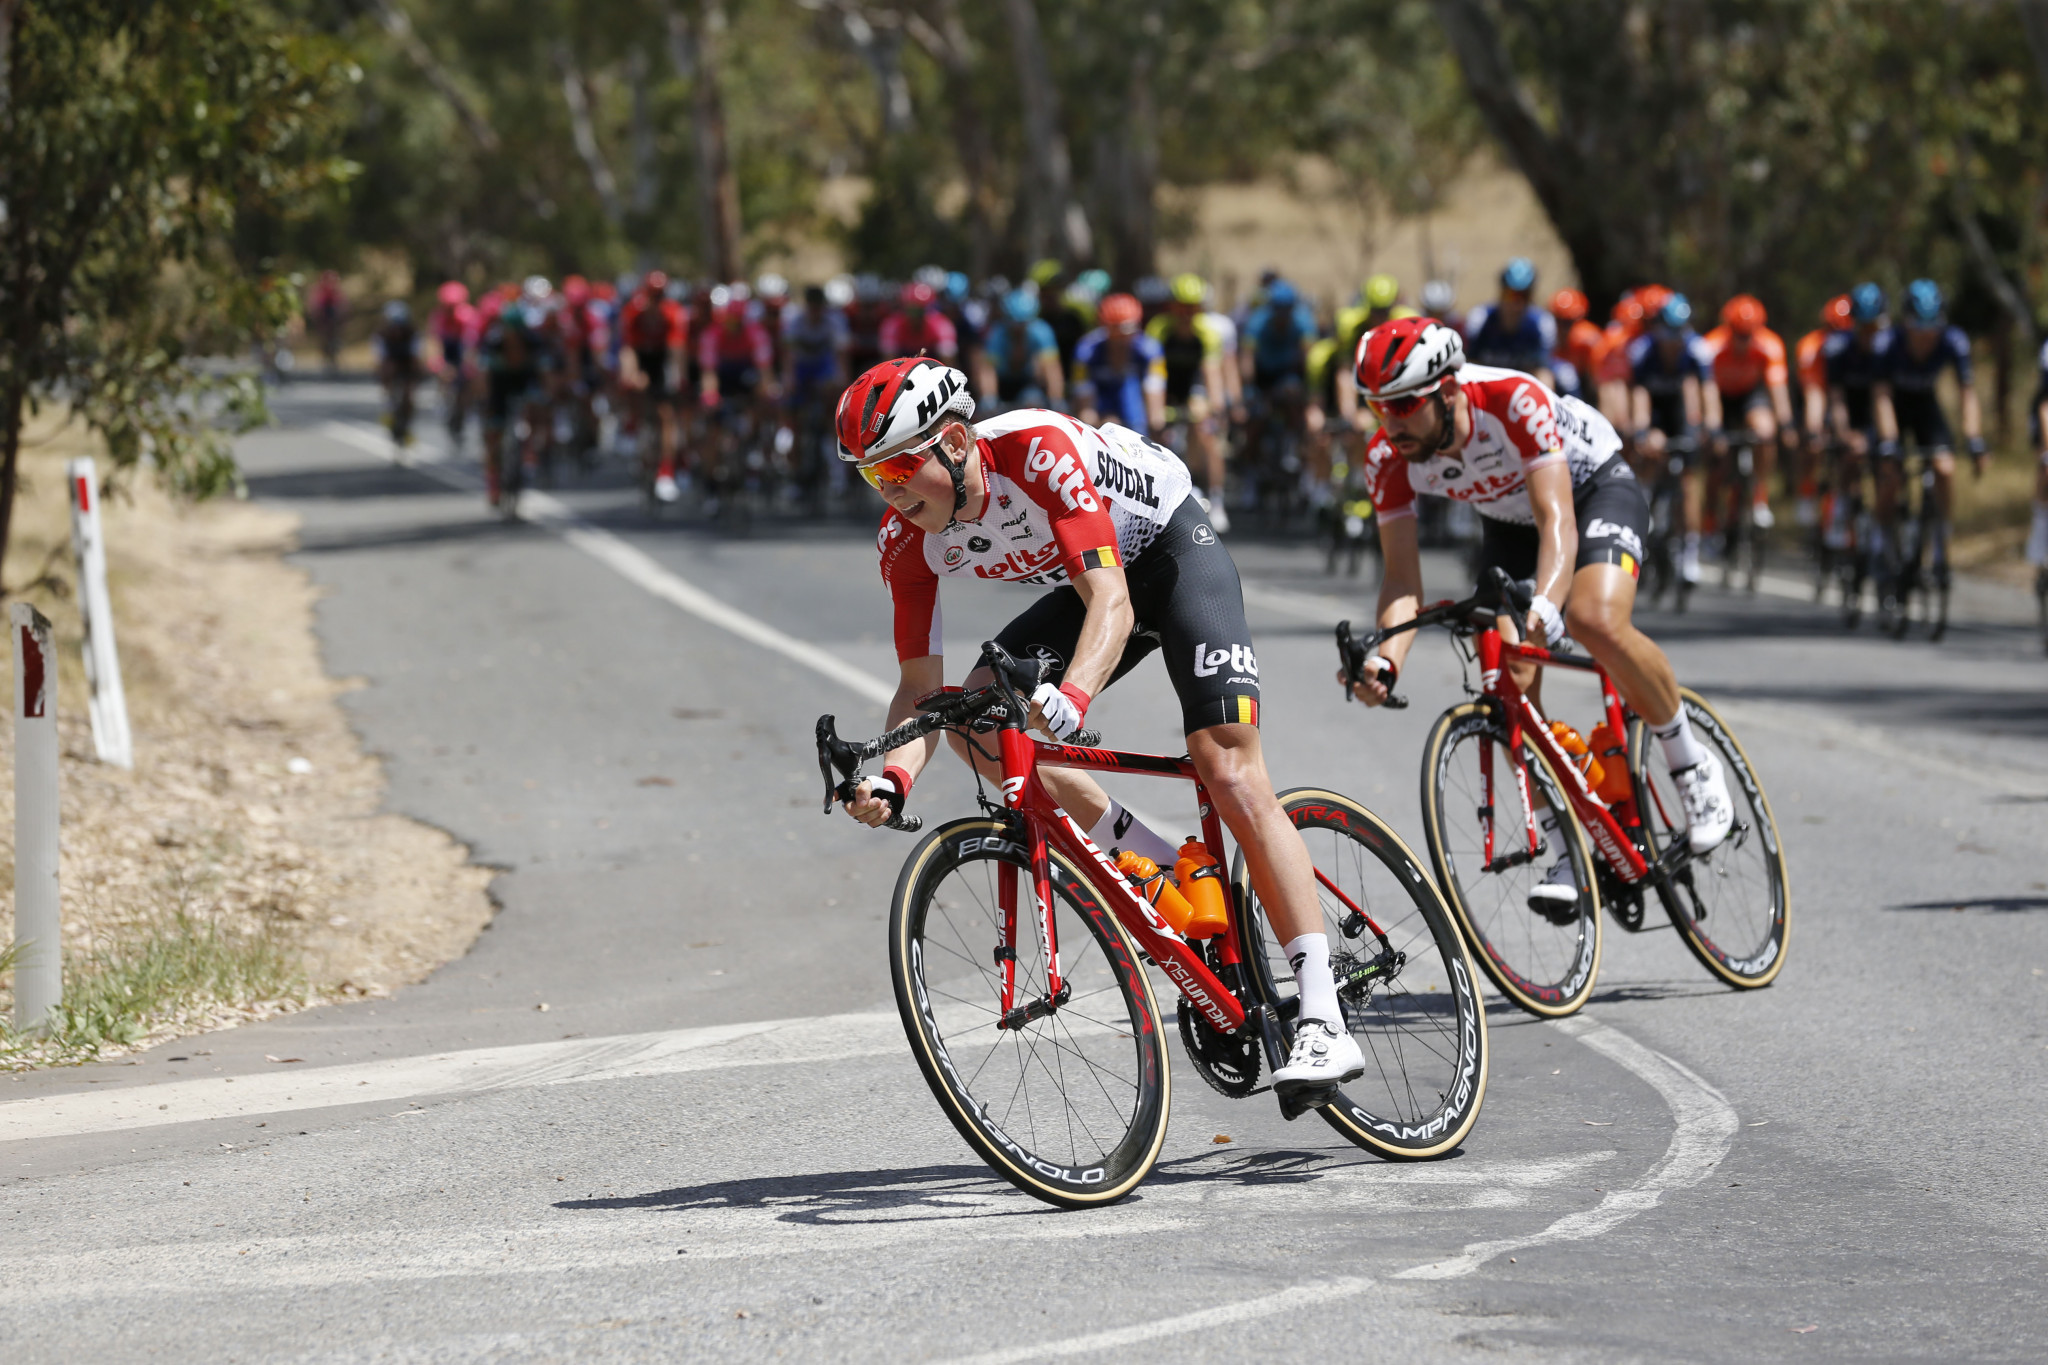 Lappartient set to achieve election pledge as UCI announce tramadol ban to come into force